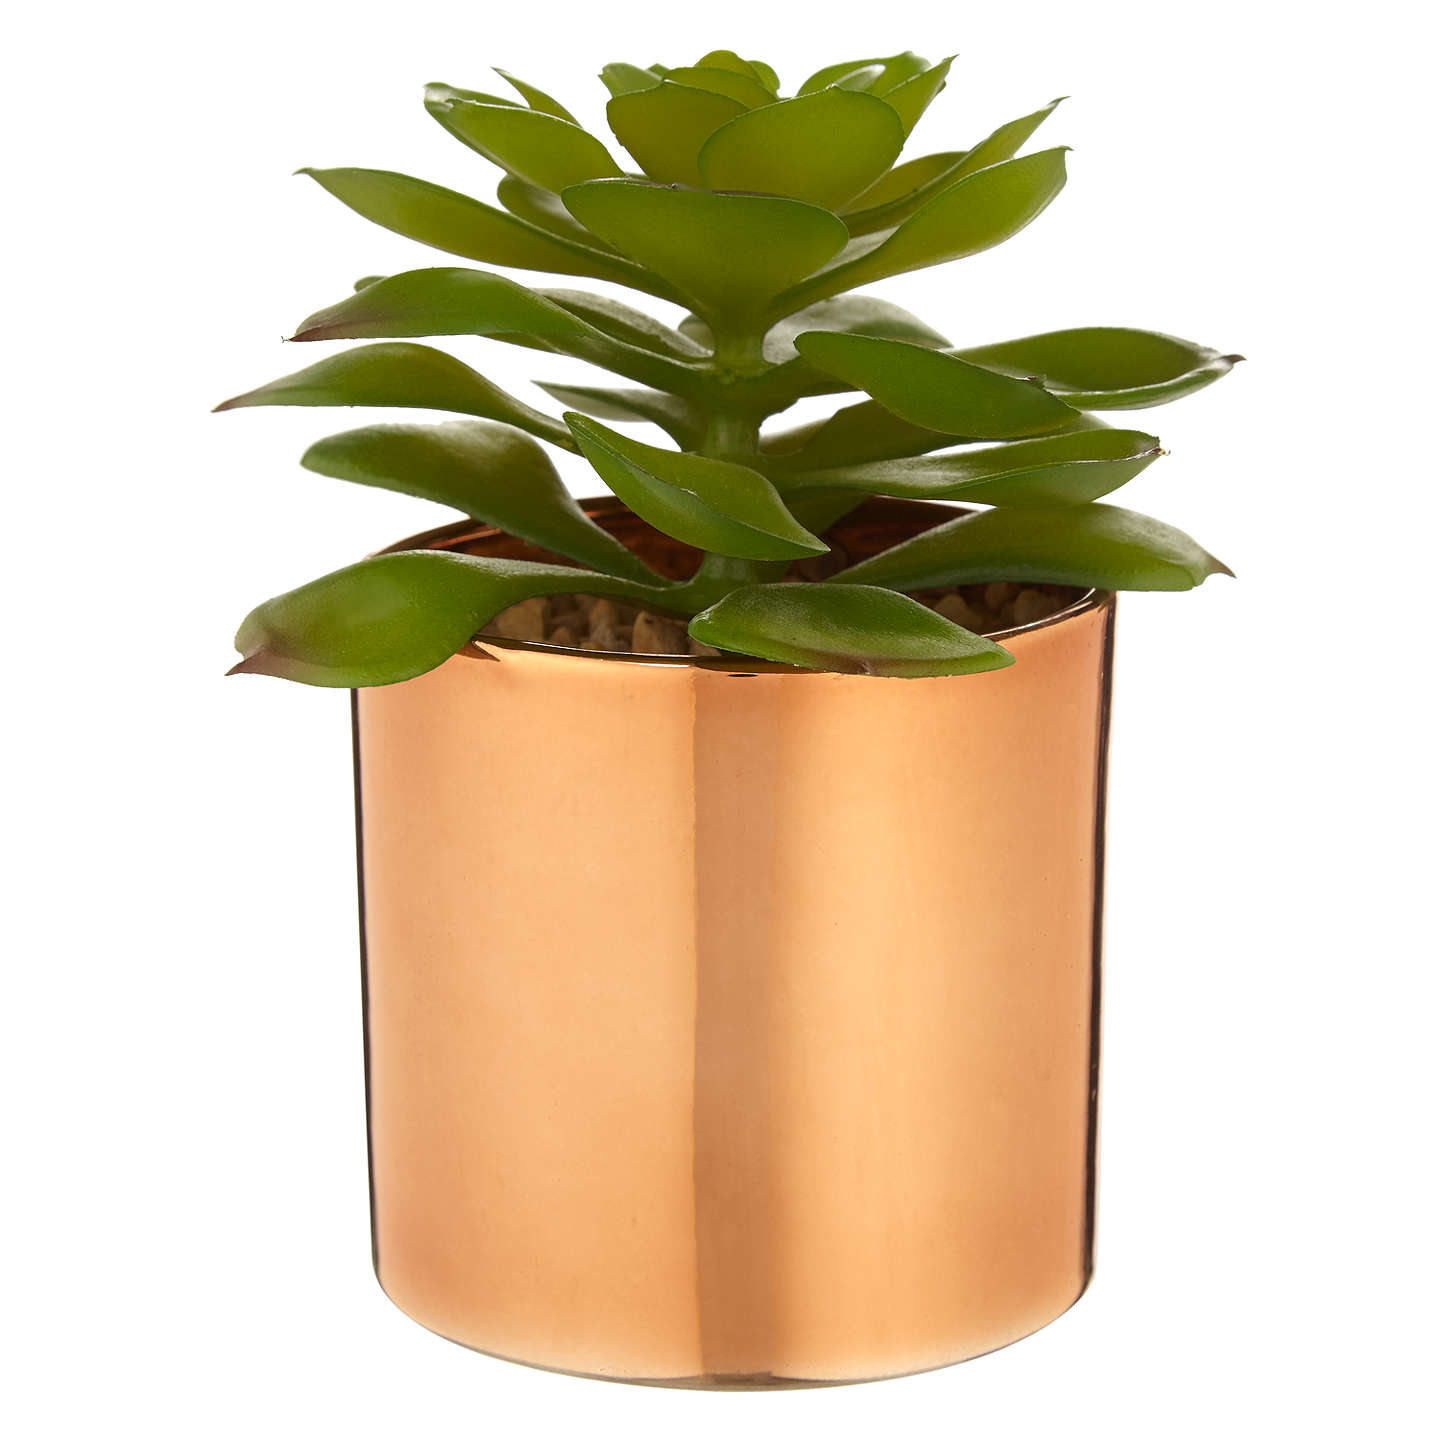 John lewis artificial cactus in metallic pot 525 inches at john lewis buyjohn lewis artificial cactus in metallic pot 525 inches online at johnlewis mightylinksfo